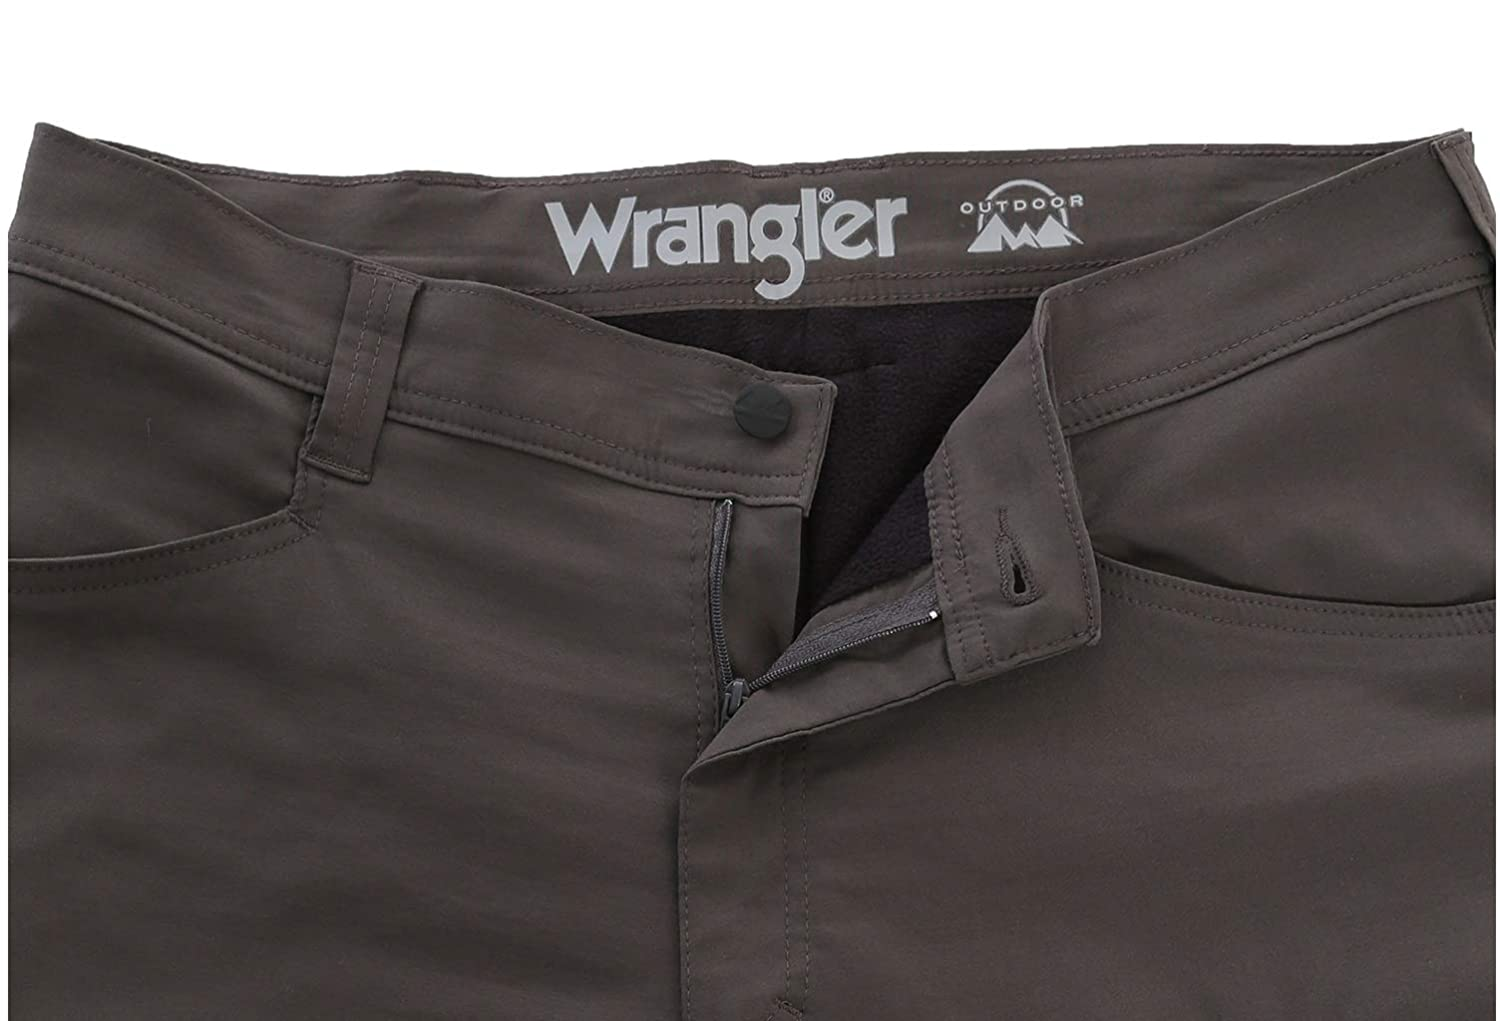 Wrangler Mens Pants Size 34 x 34 Fleece Lined Outdoor Straight fit Water Repellent UPF30 Lightweight Performance Grey